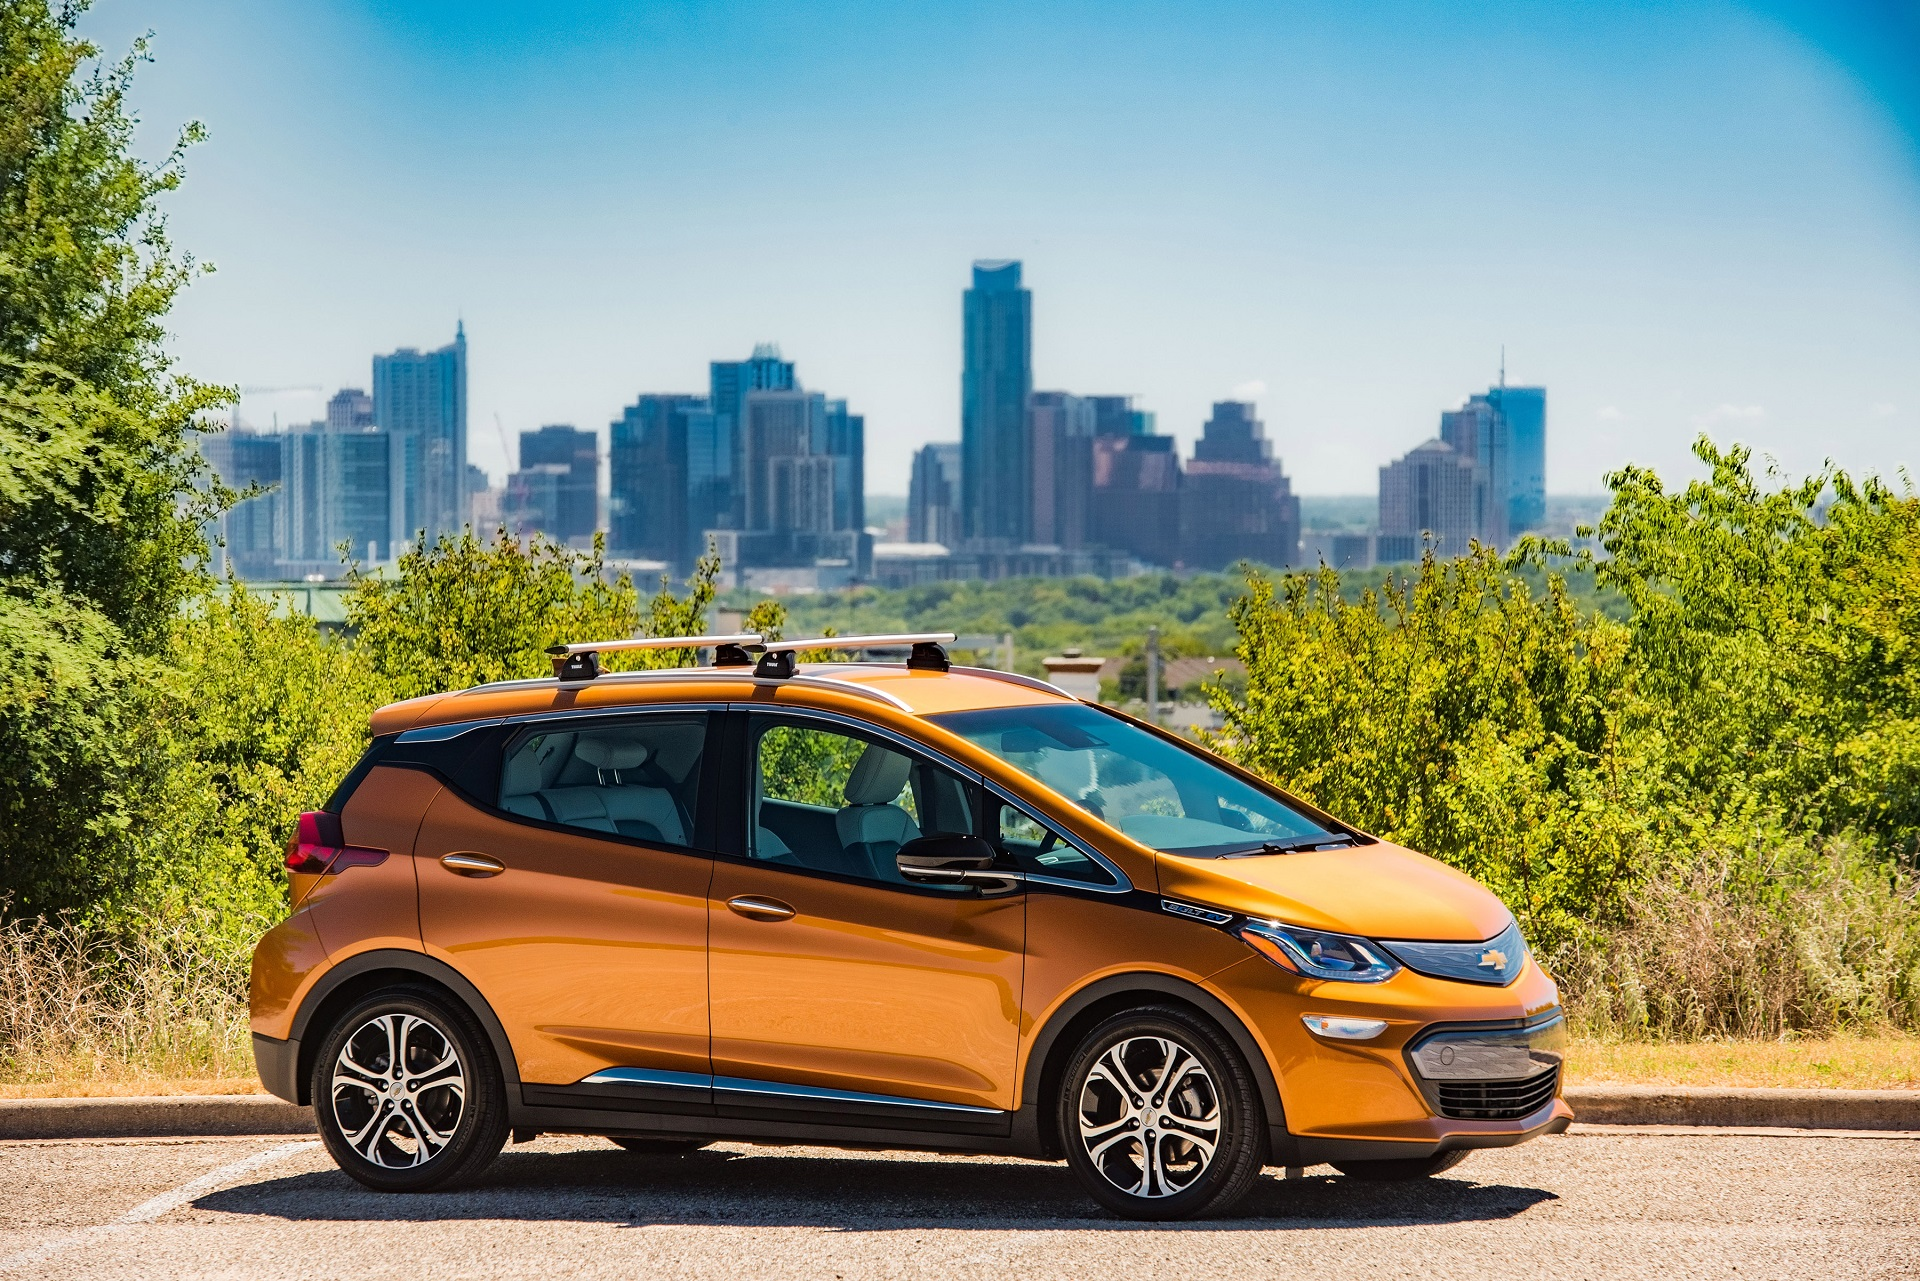 2018 Chevrolet Bolt EV – Is This The Future Of Chevrolet Four-Wheelers?